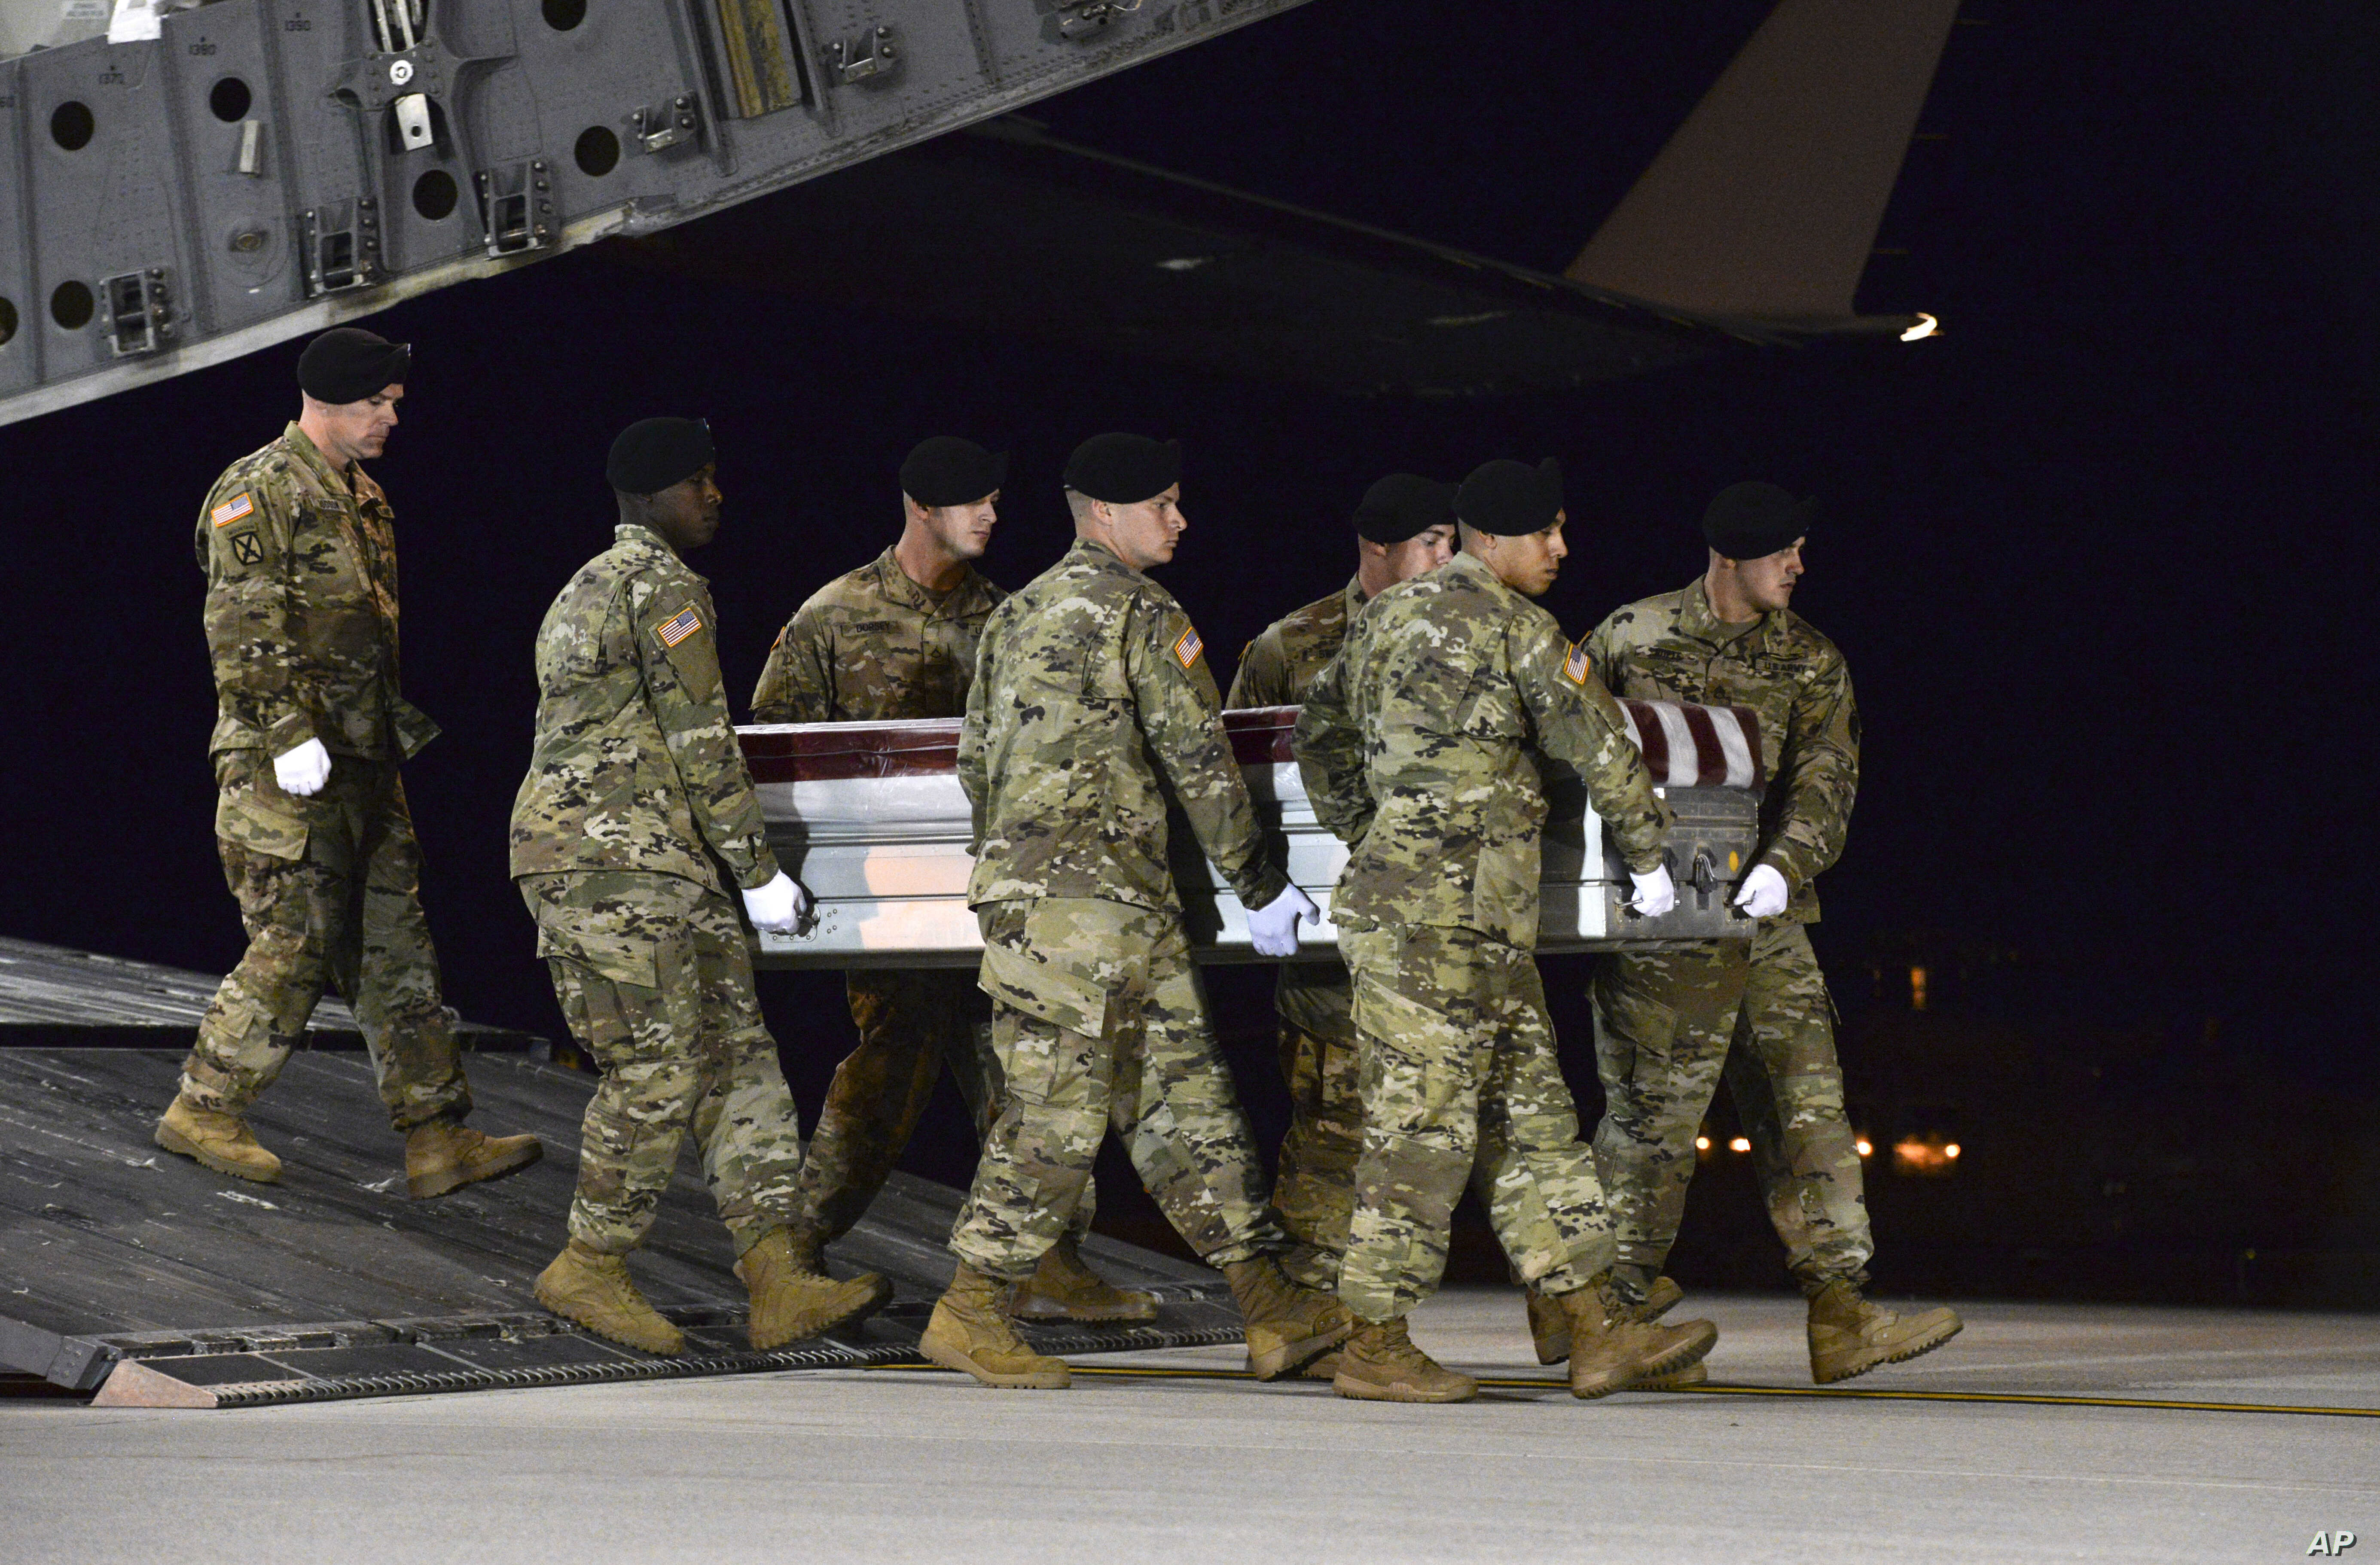 FILE - In this Oct. 5, 2017 file photo, a U.S. Army carry team transfers the remains of Army Staff Sgt. Dustin Wright  upon arrival at Dover Air Force Base, Delaware. Wright was one of four U.S. troops killed in an ambush by dozens of Islamic extremi...